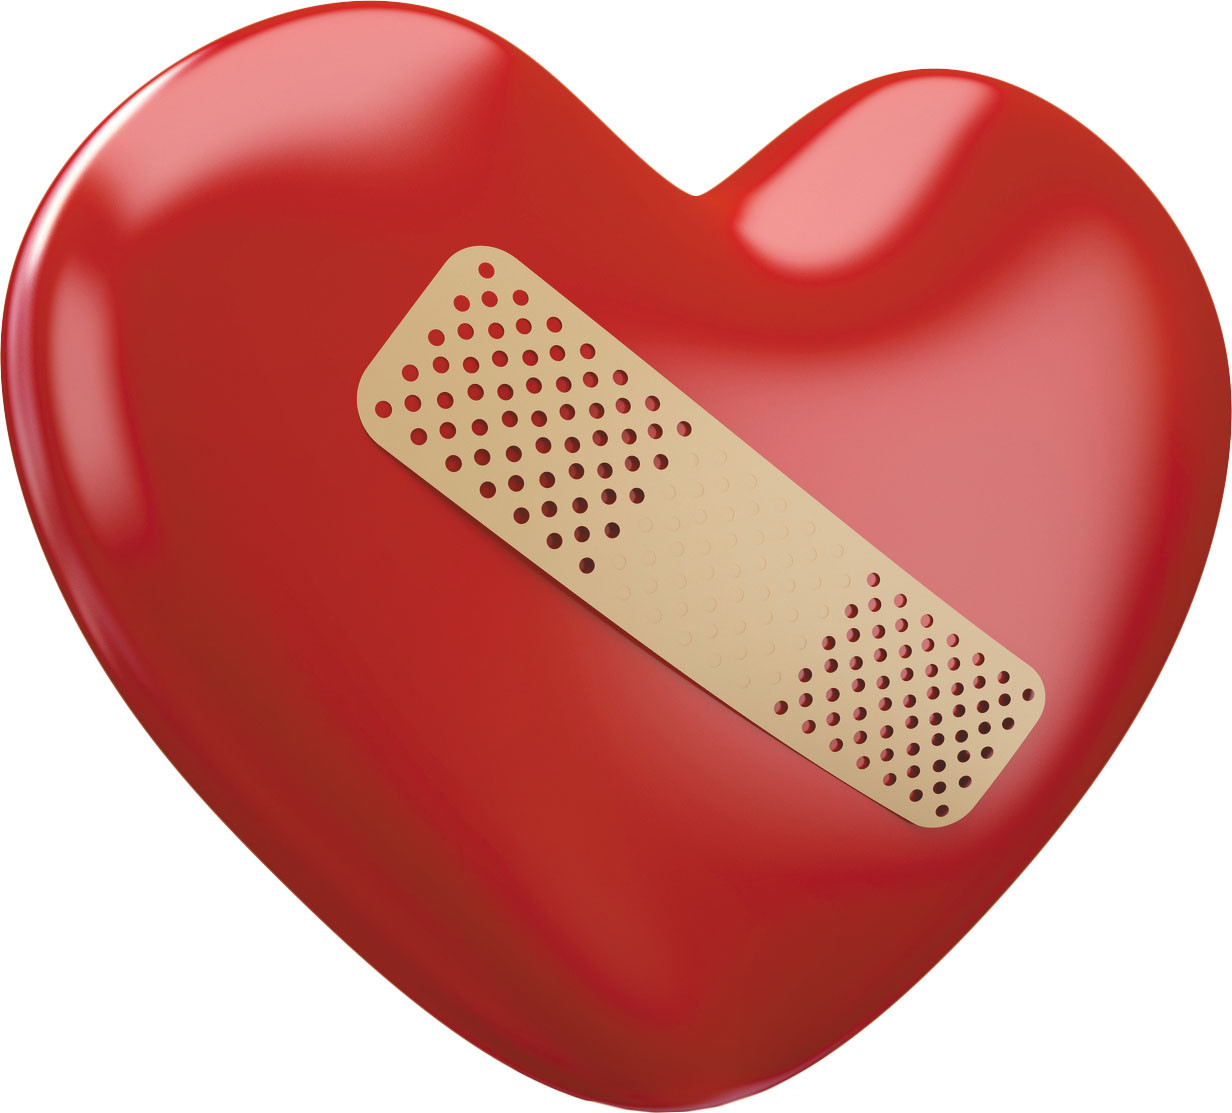 Should I be screened for atrial fibrillation?